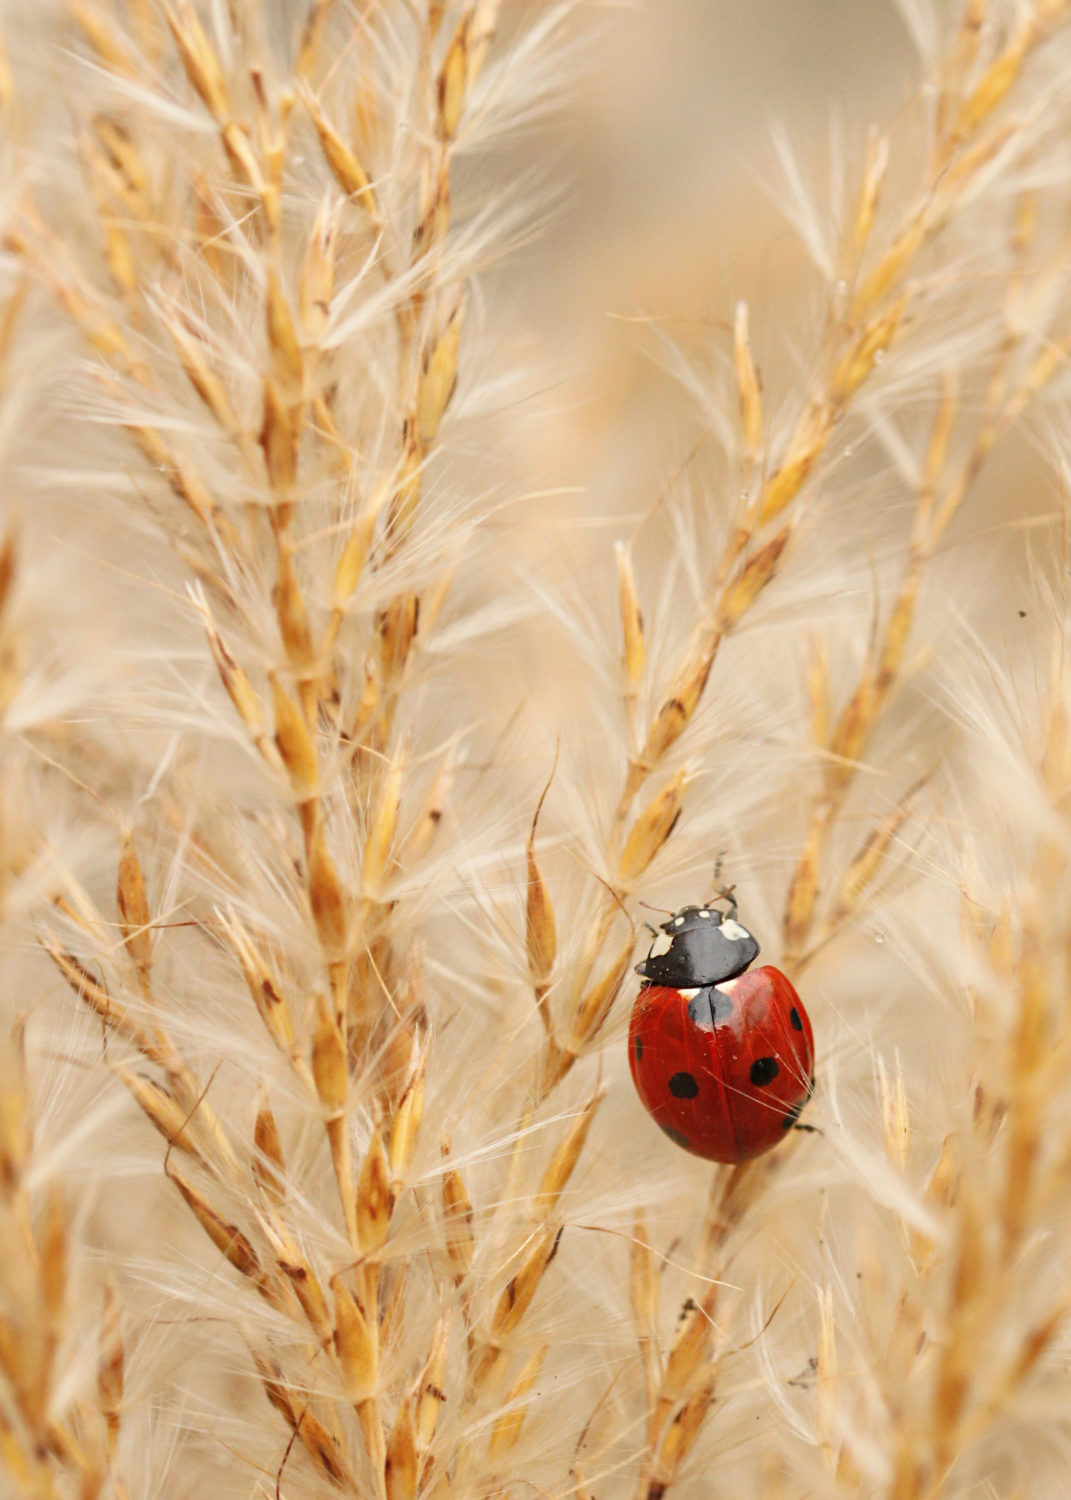 Close-up photograph of a ladybird crawling on a strand of wheat.